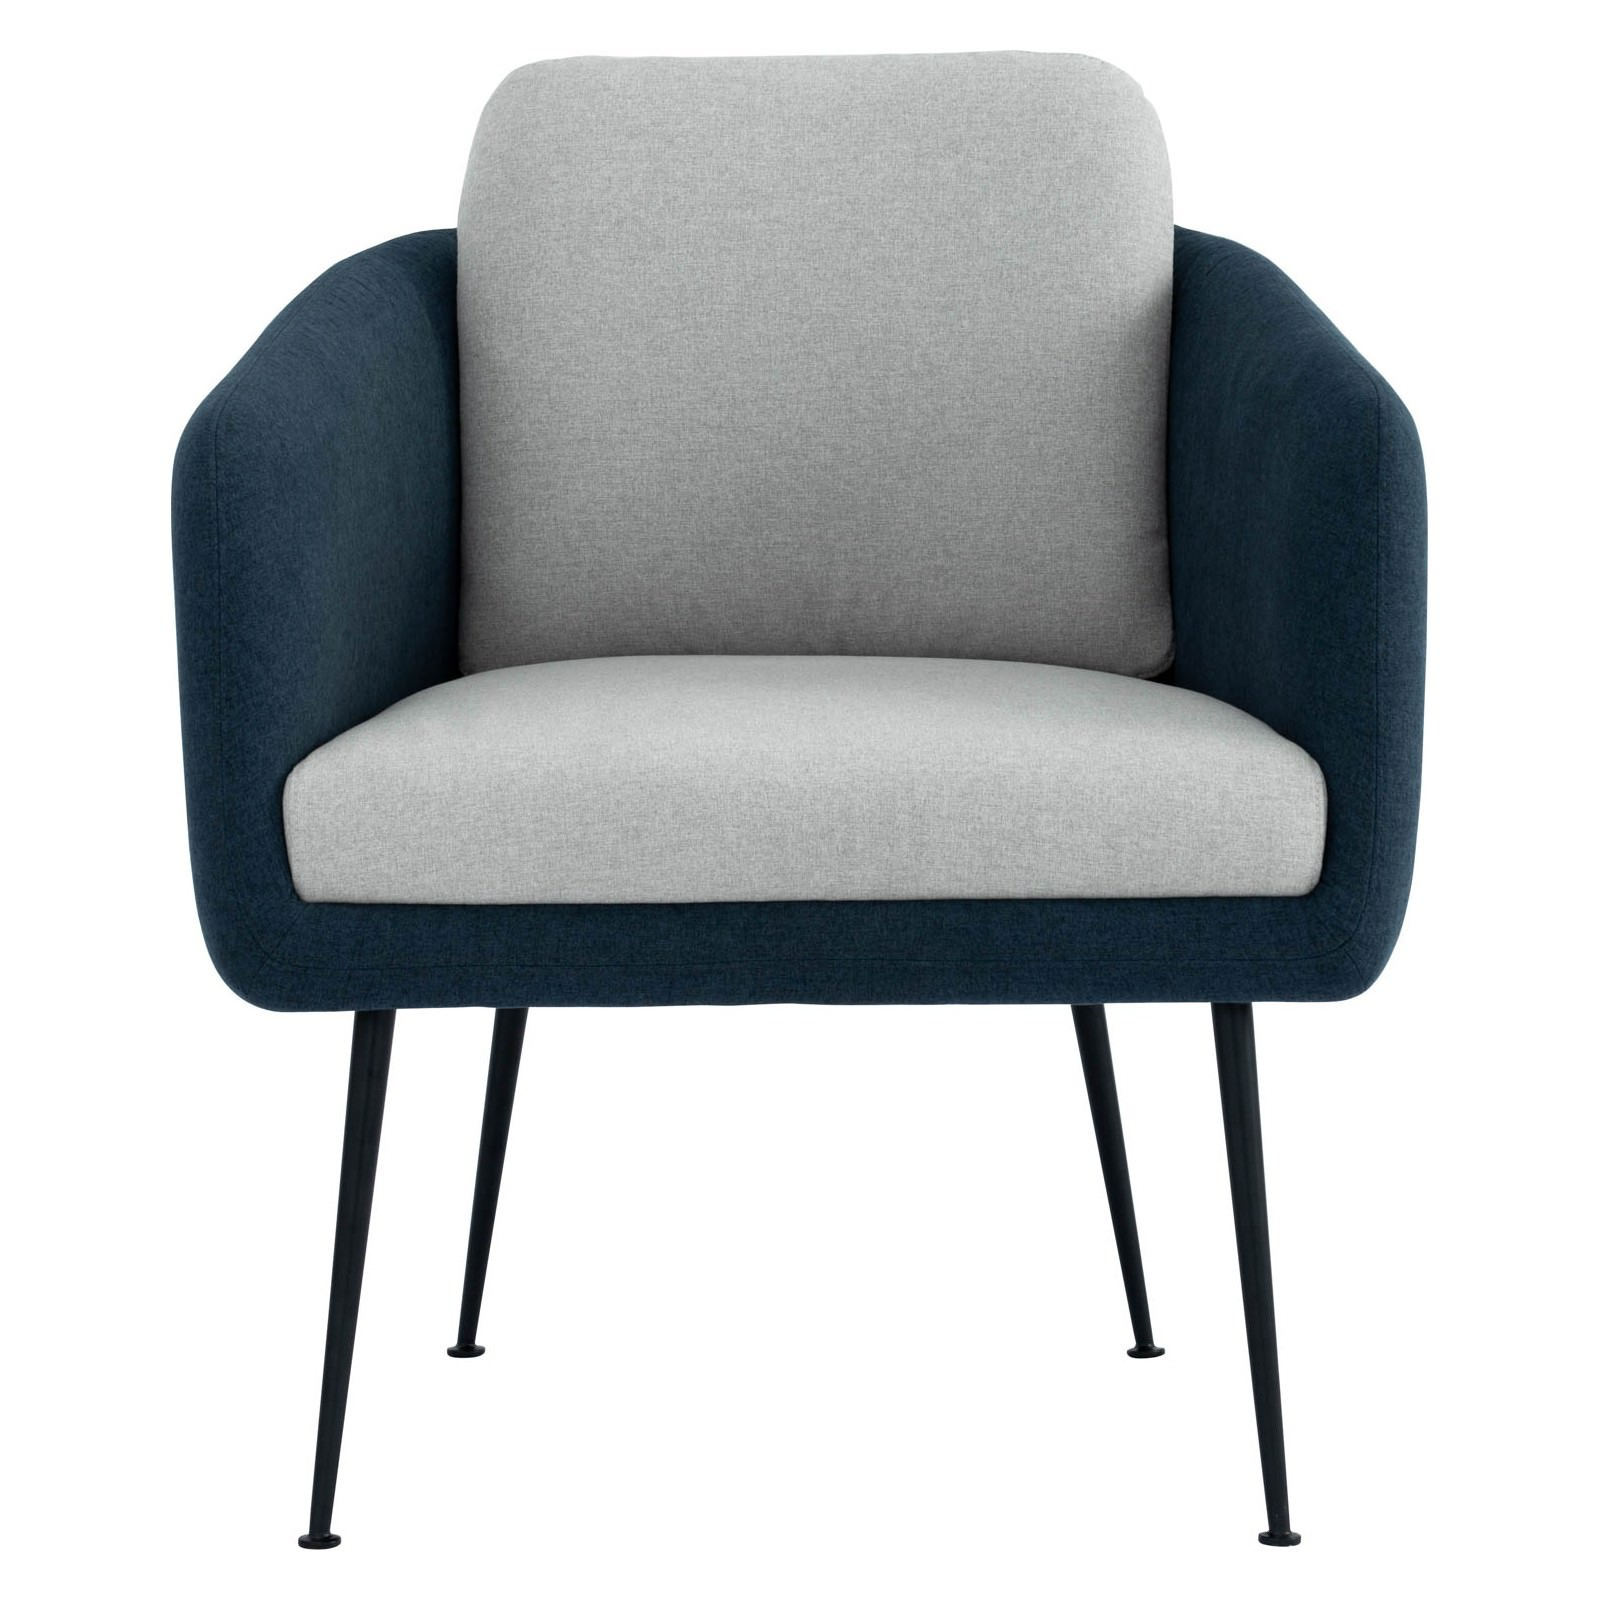 Cougar Commercial Grade Fabric Lounge Armchair, Twilight / Grey